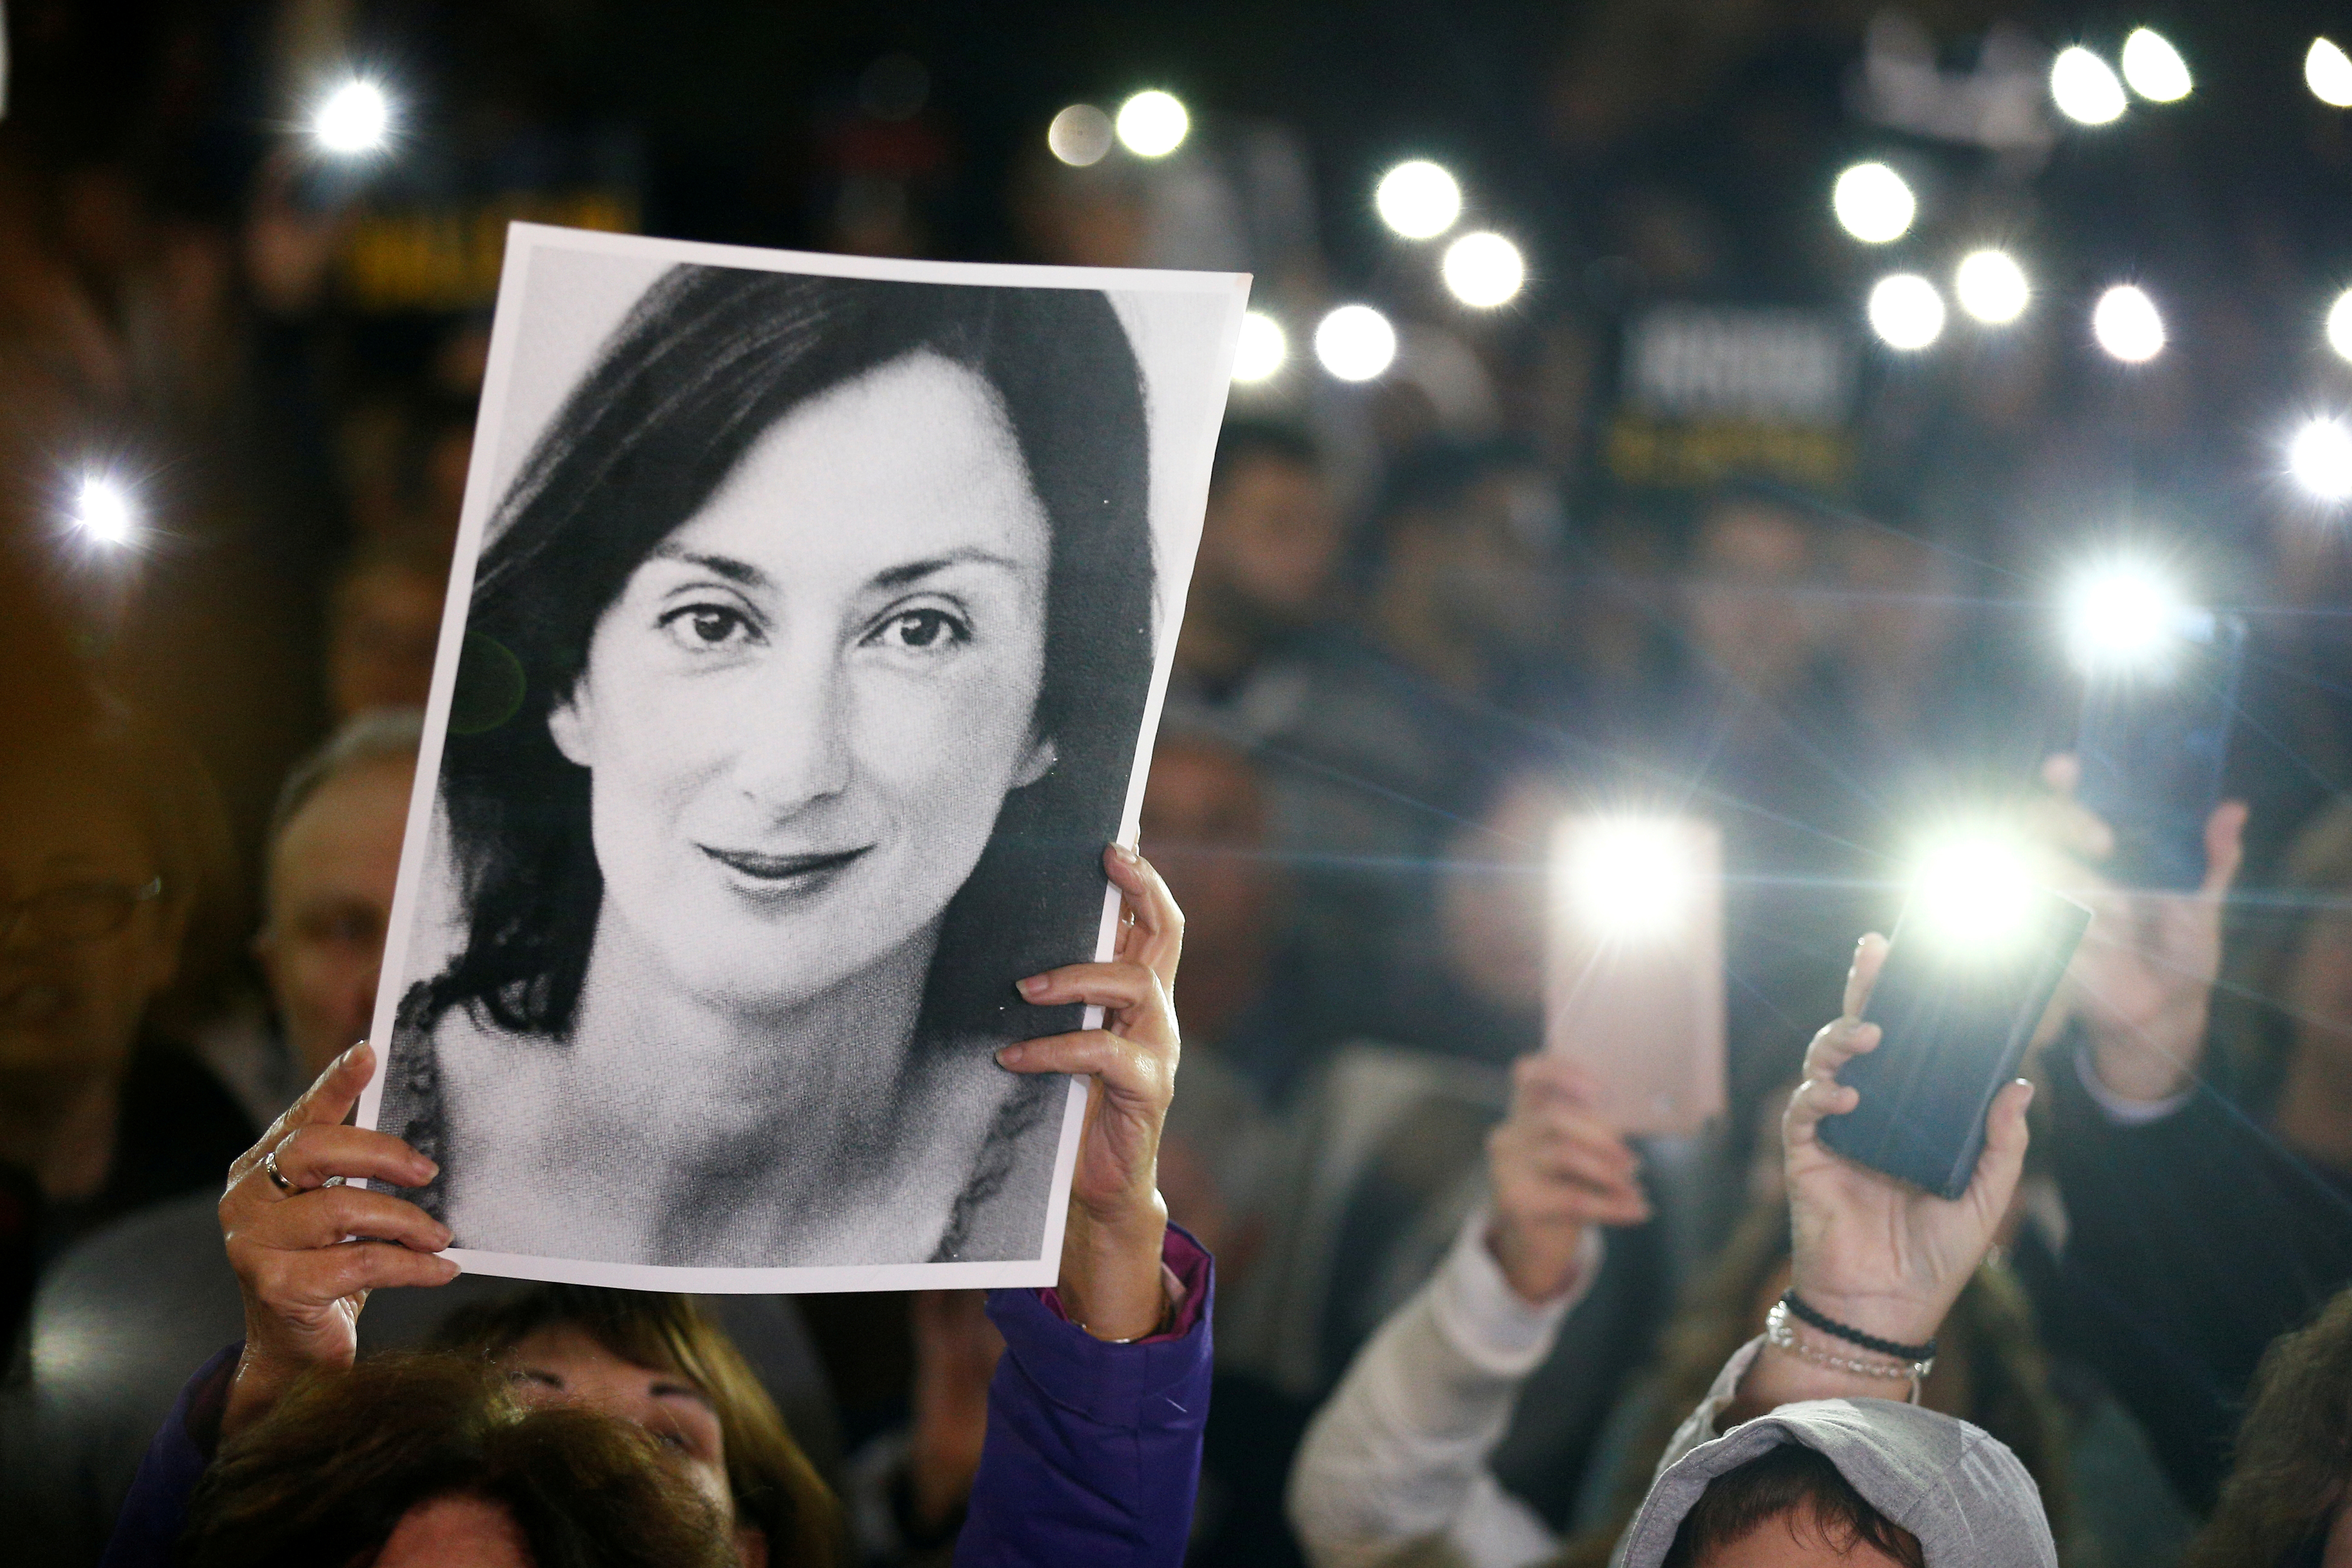 People gather at the Great Siege Square calling for the resignation of Joseph Muscat following the arrest of one of the country's most prominent businessmen as part of the investigation into the murder of journalist Daphne Caruana Galizia, in Valletta, Malta November 20, 2019. REUTERS/Guglielmo Mangiapane/File Photo